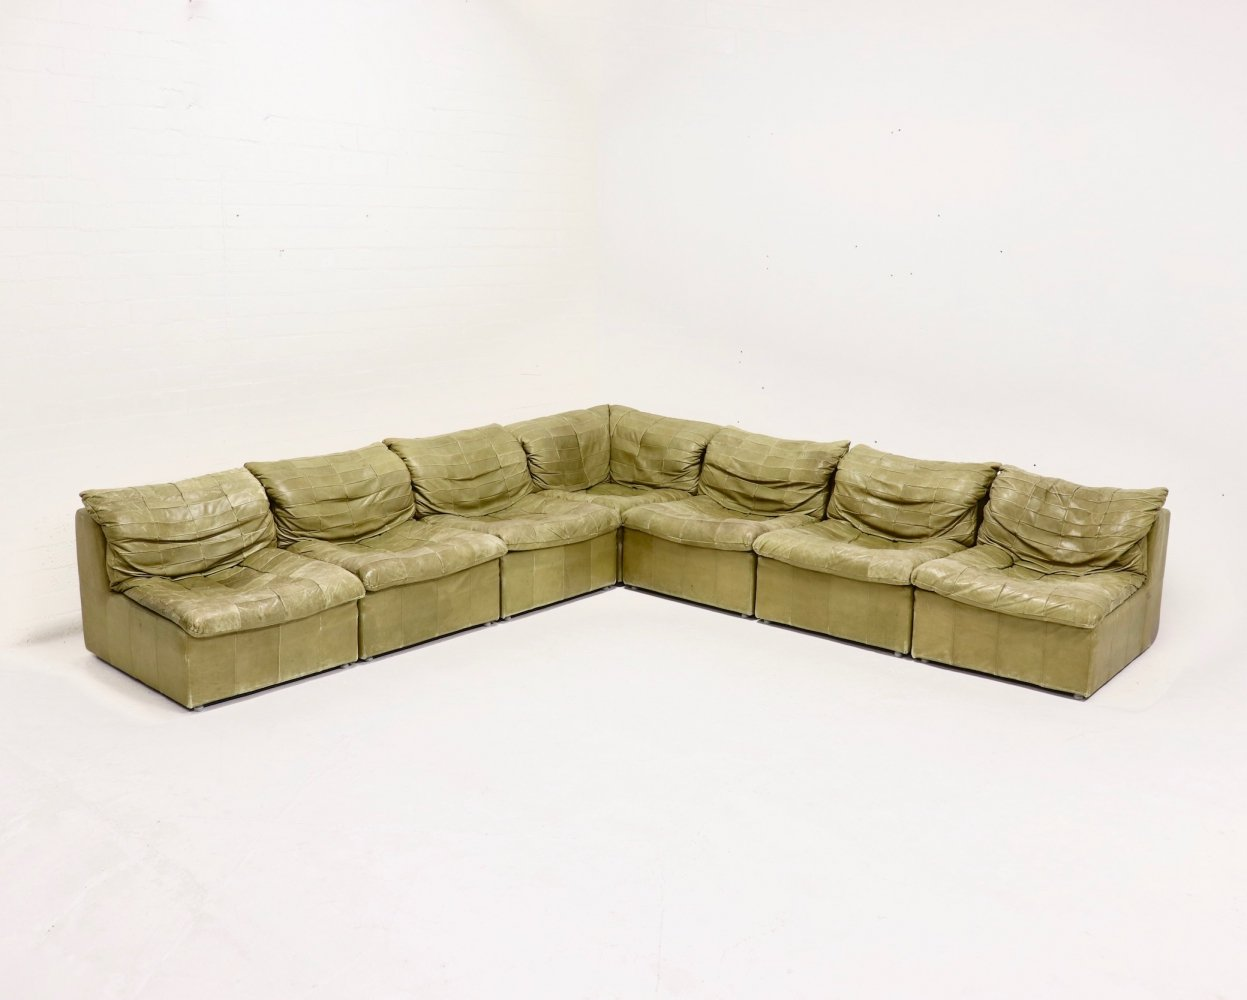 Olive Green Modular Leather Patchwork Laauser Sofa, 1970s